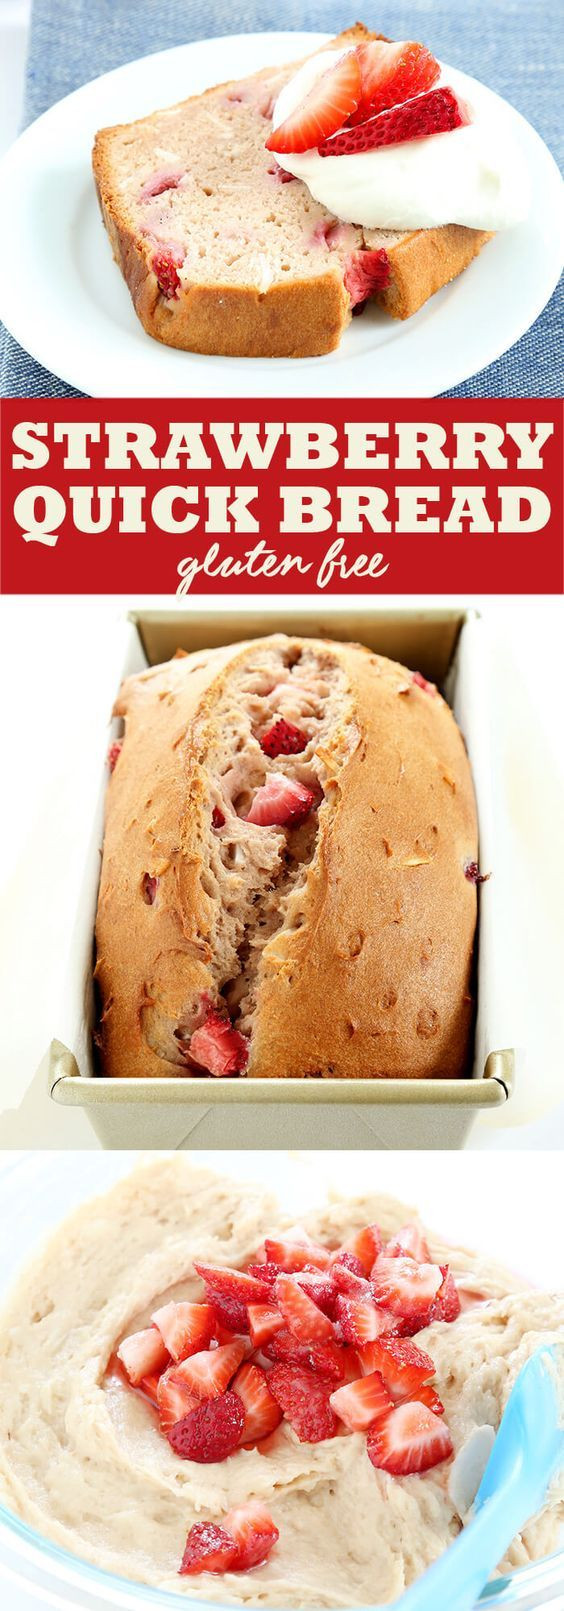 Quick Gluten Free Desserts  237 best images about Gluten Free Bread Recipes on Pinterest